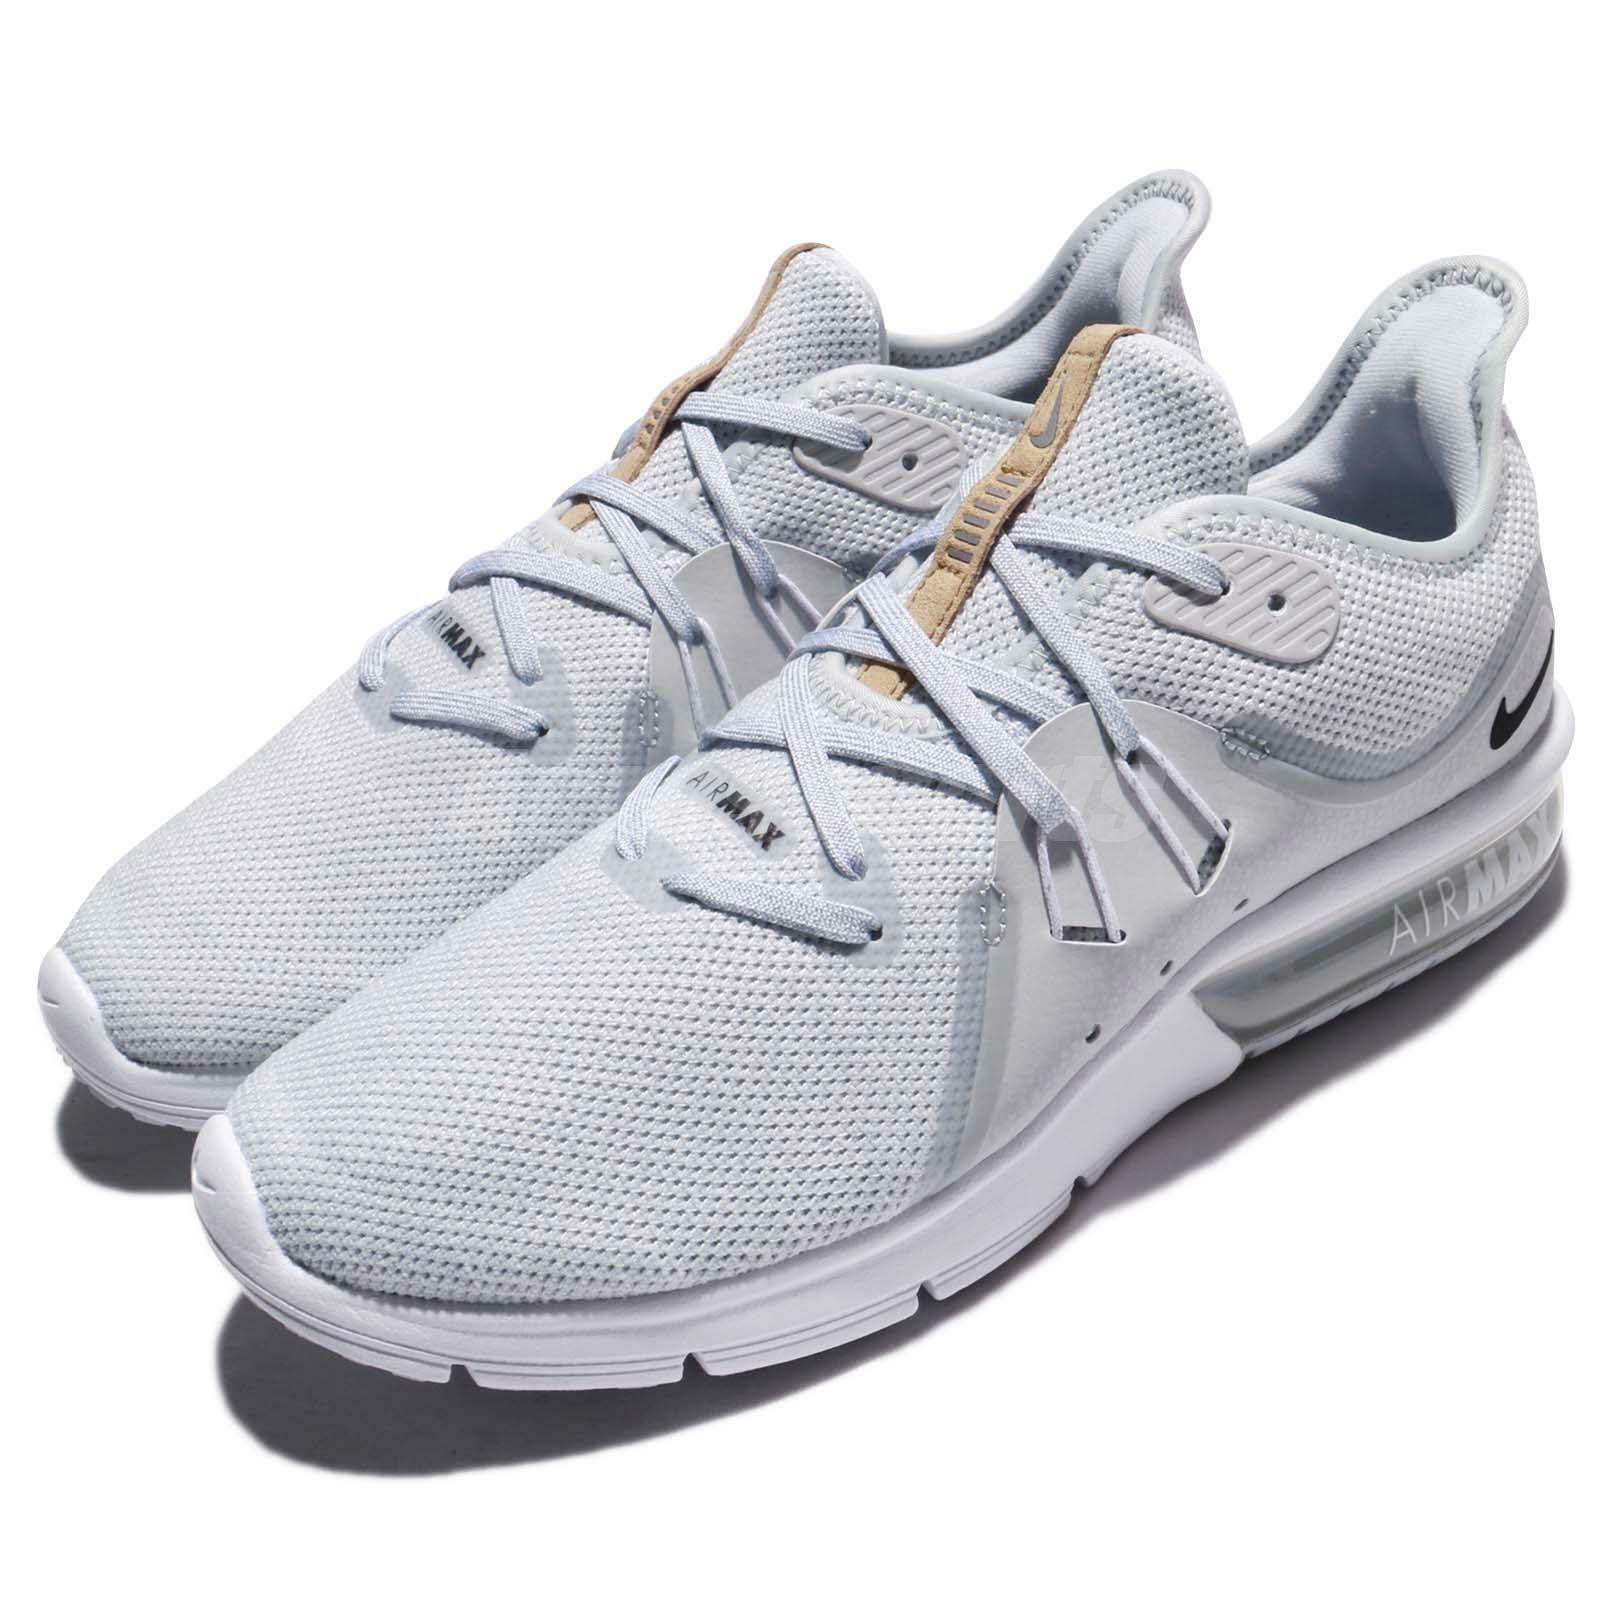 Nike Air Max Sequent 3 III Pure White Platinum White Pure Uomo Running Shoes 921694-008 3f8eb9